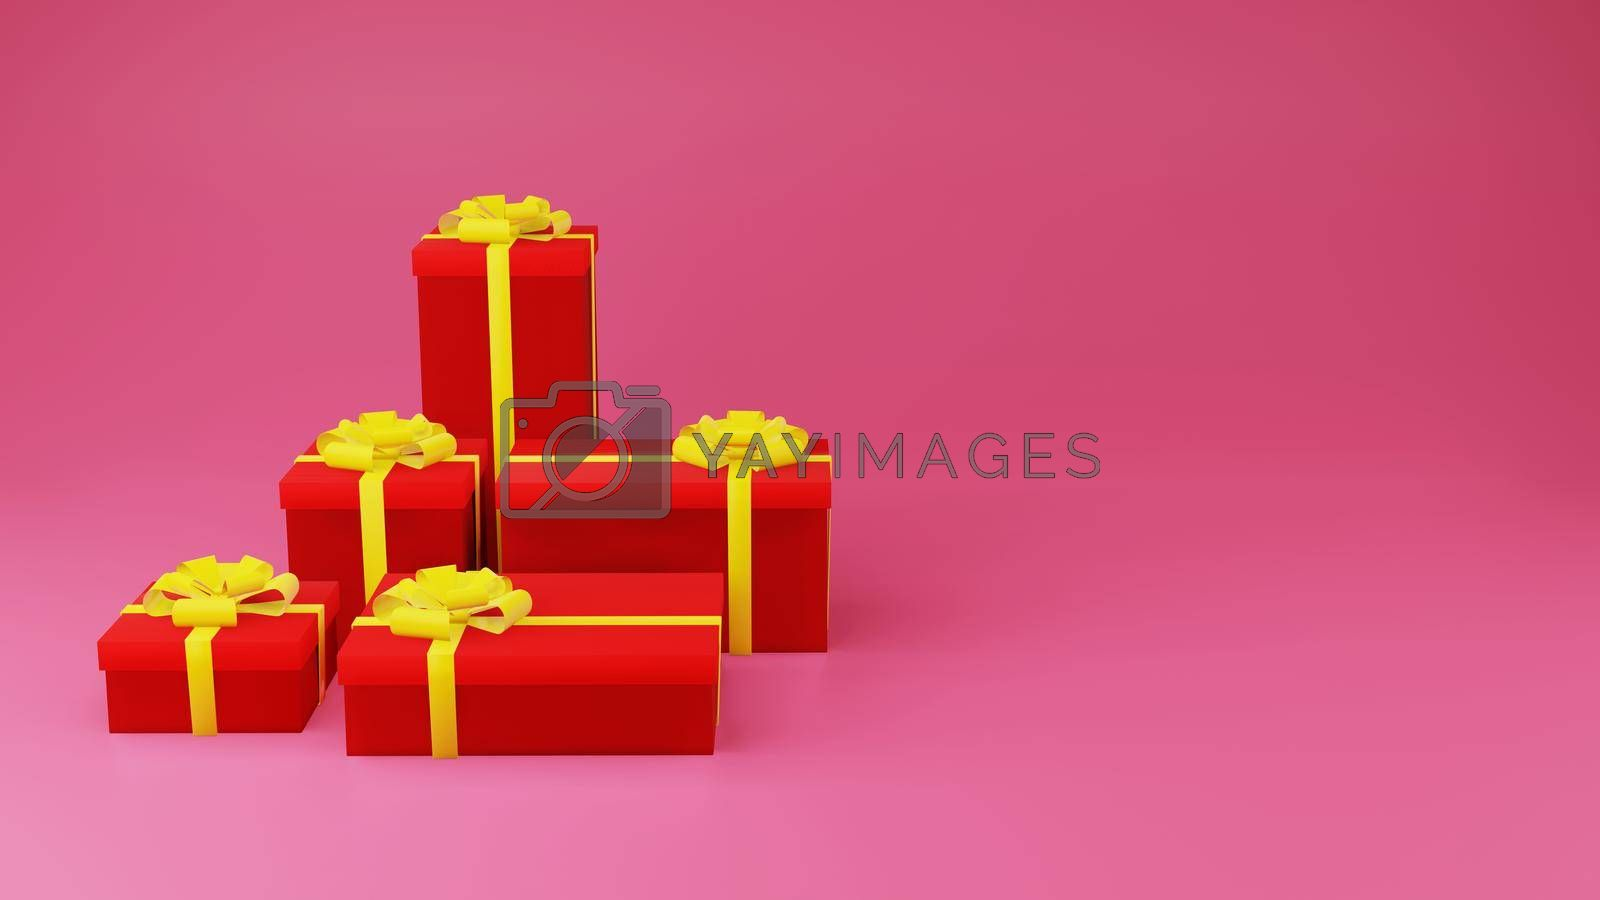 Royalty free image of Red gift box with golden ribbon on pink background by eaglesky